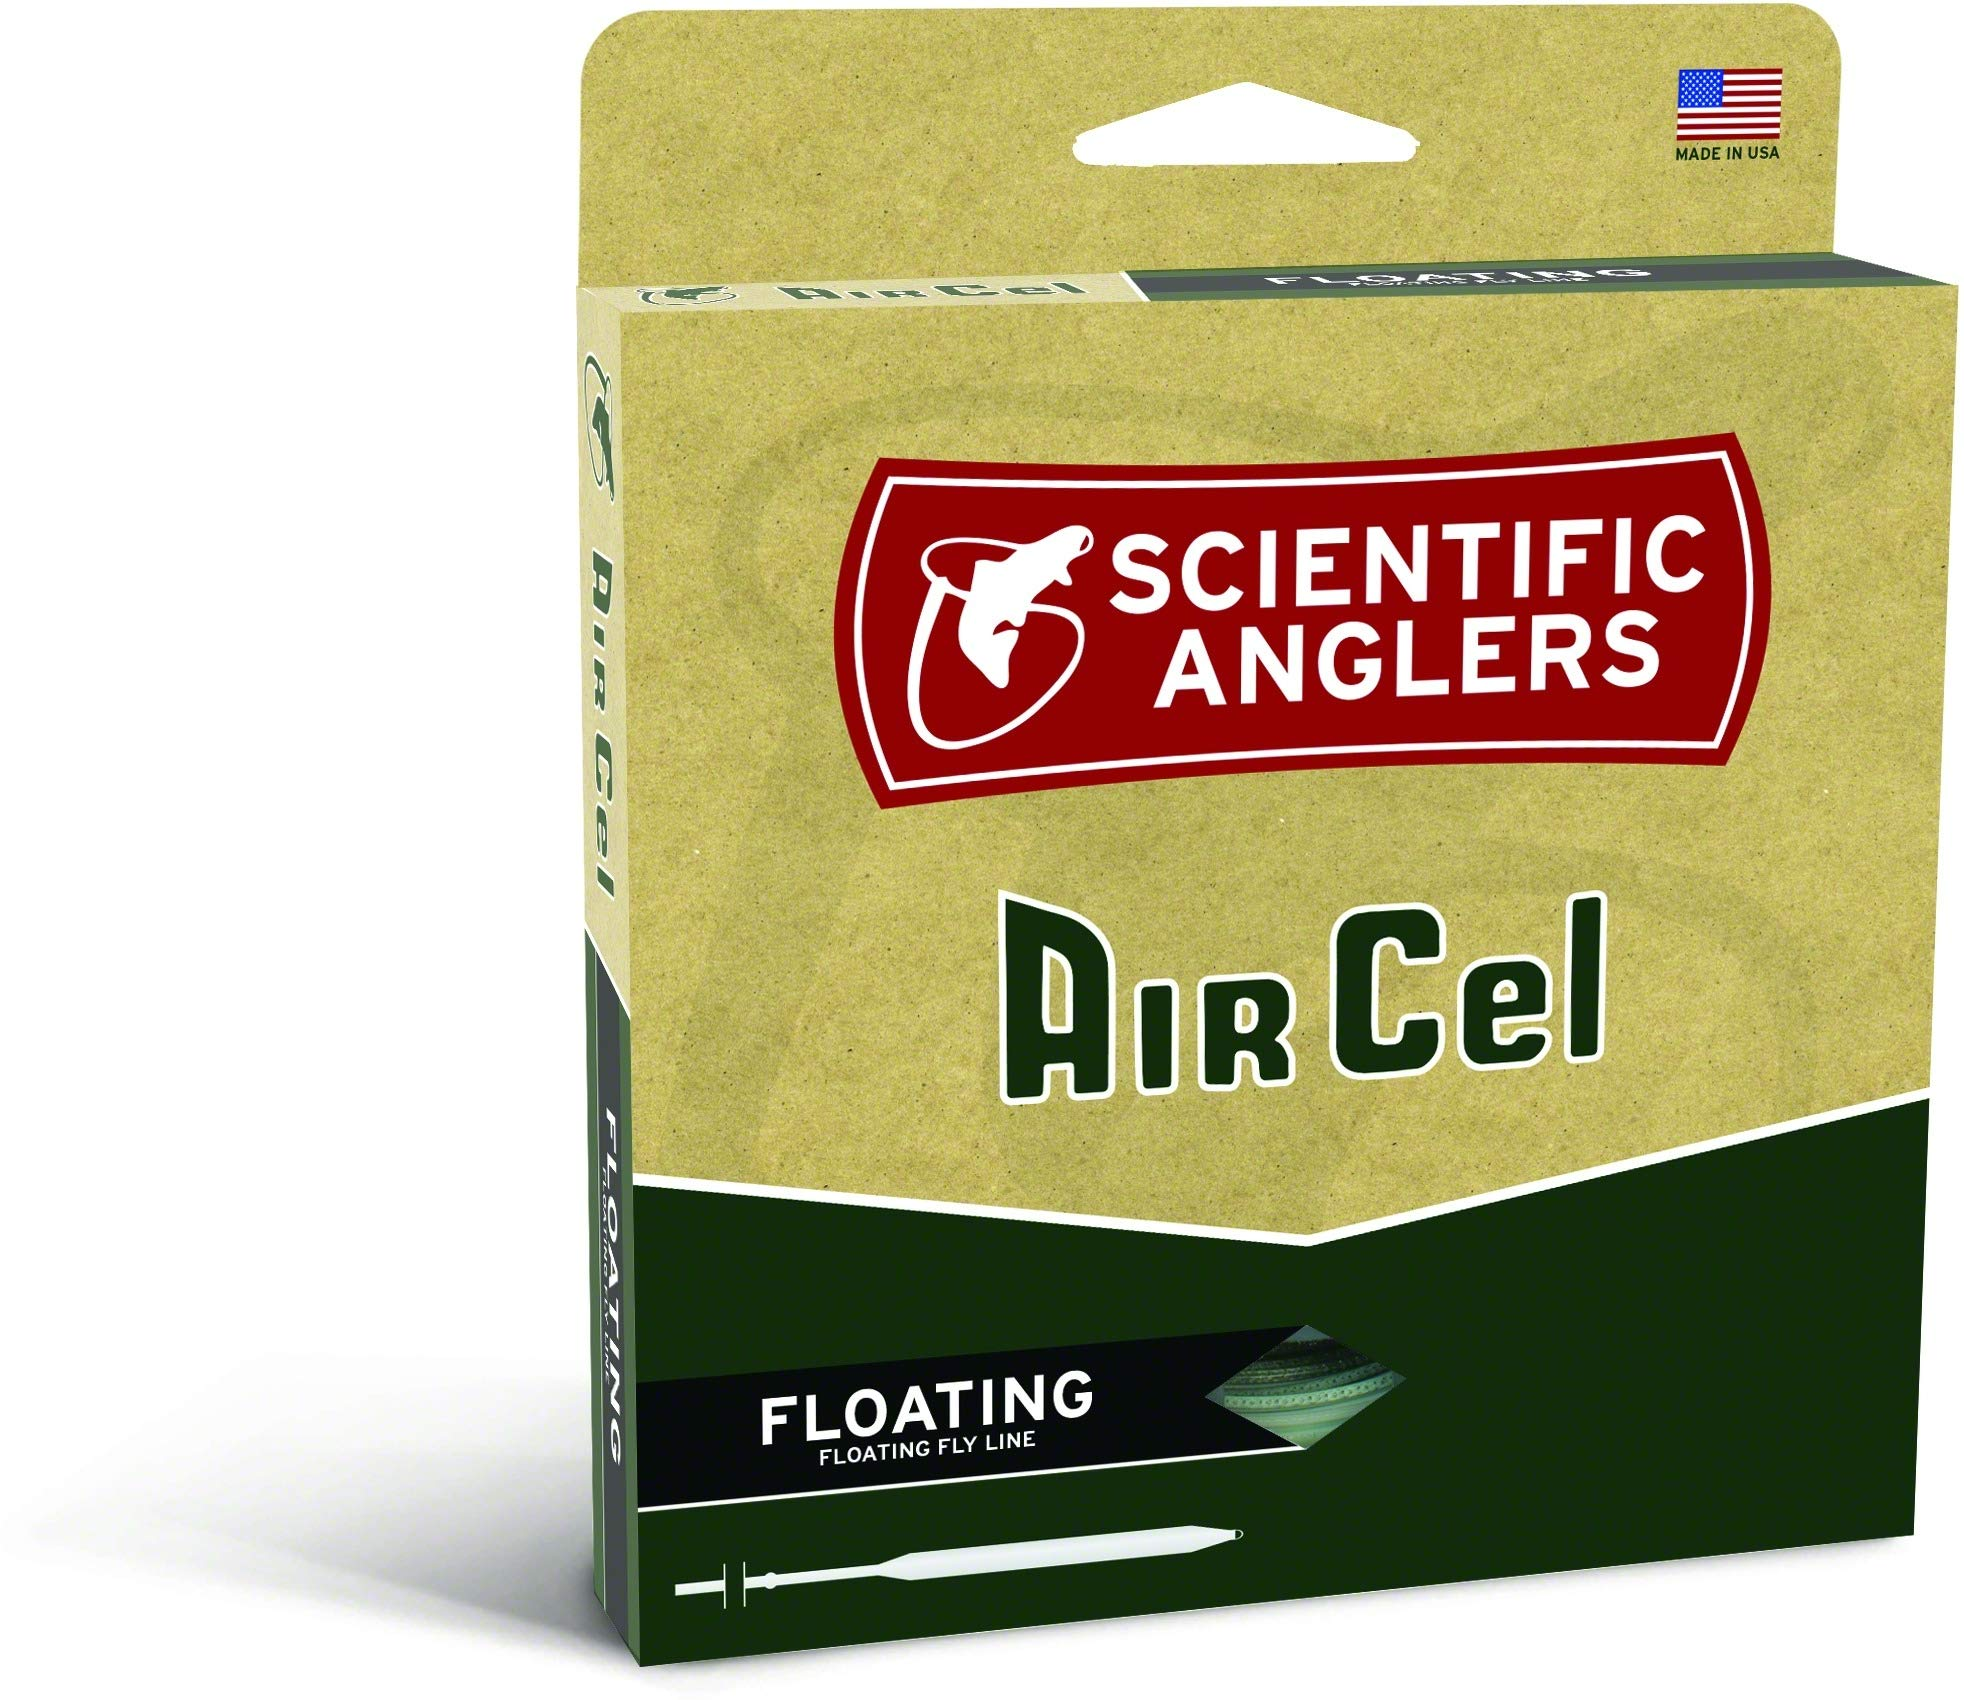 Scientific Anglers Air Cel Floating Lines, Yellow, WF- 9-F by Scientific Anglers